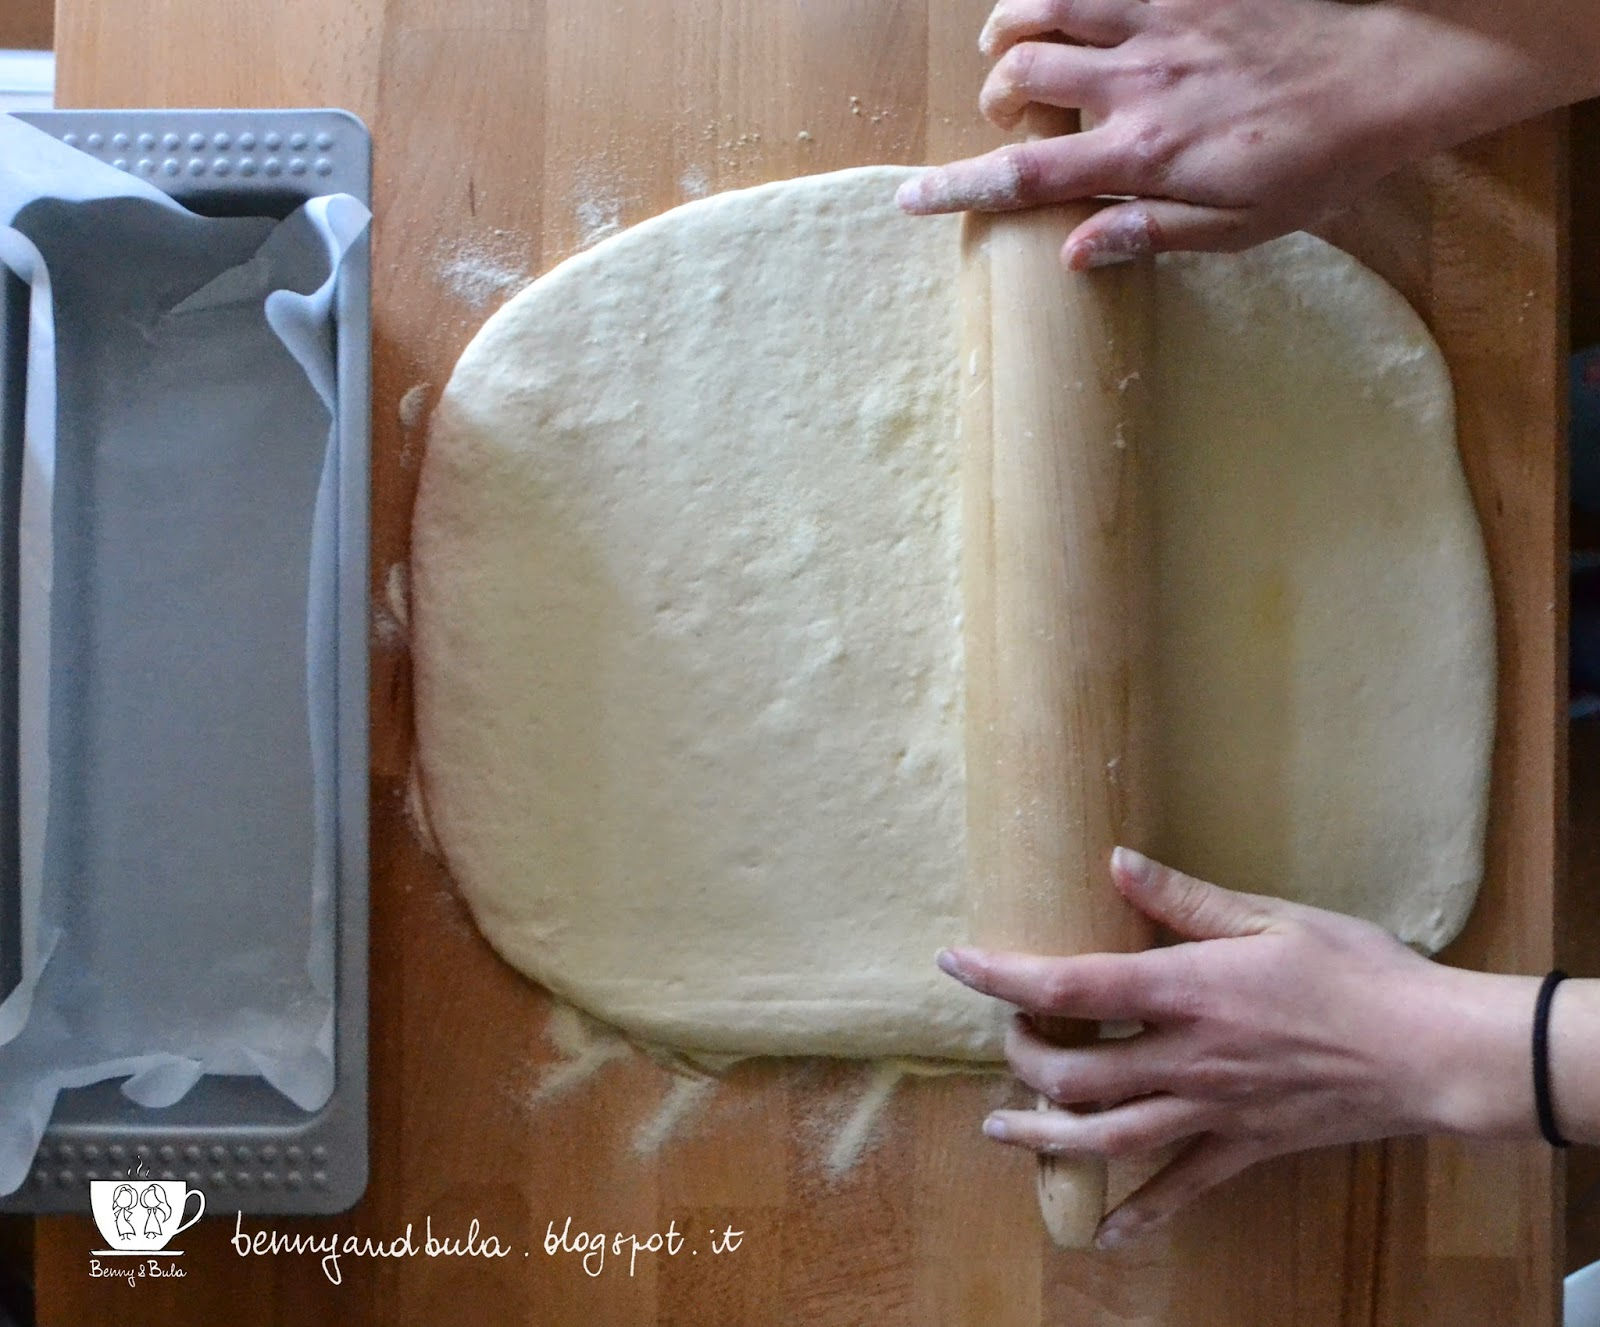 ricetta pan bauletto o pancarrè metodo milk rou o thang zong/ soft sandwich bread recipe